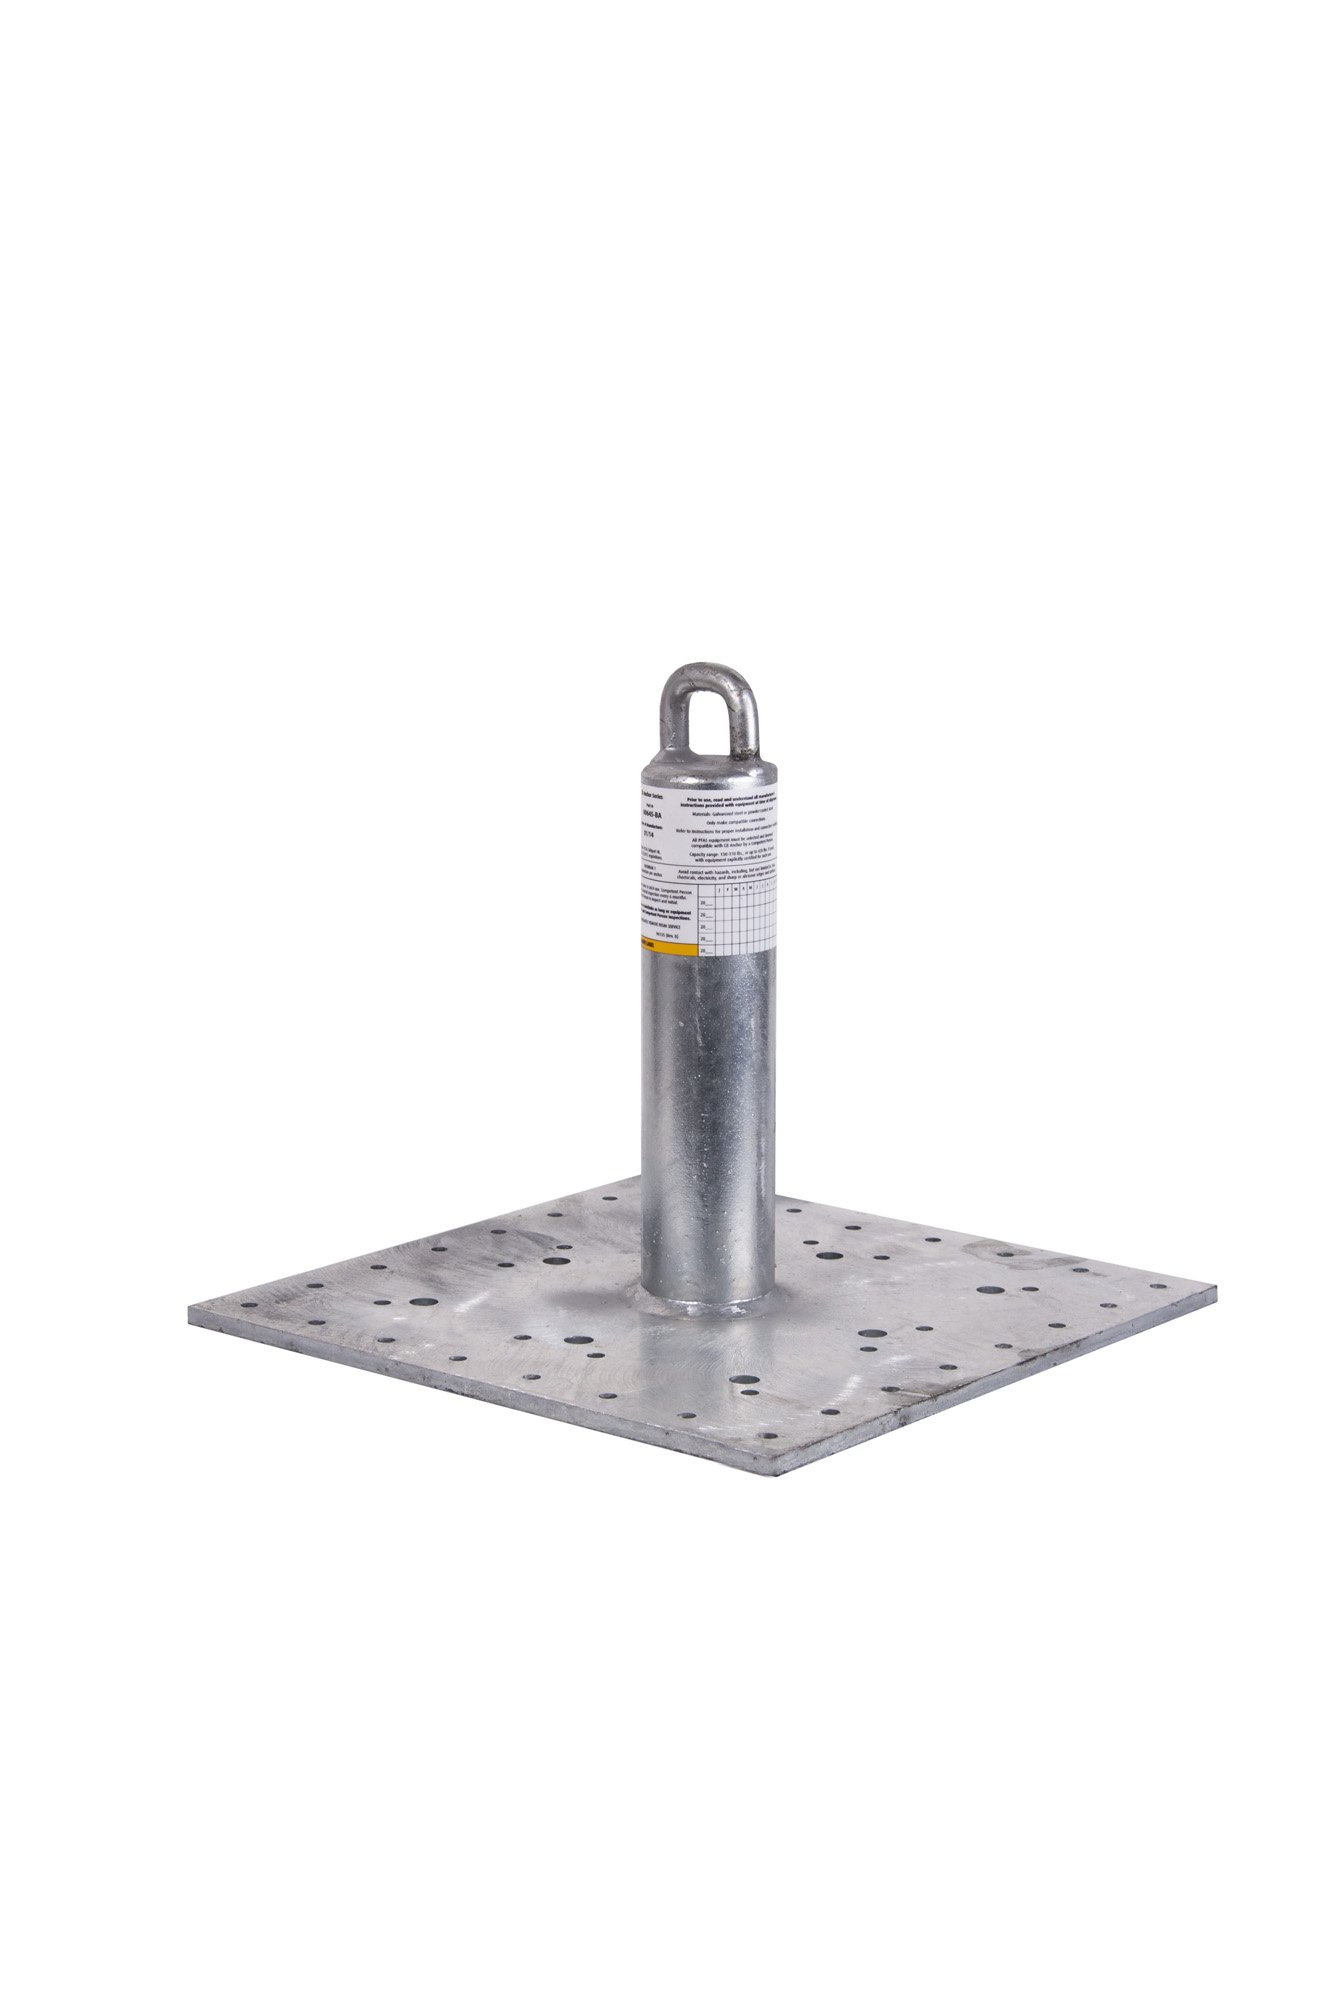 Guardian Fall Protection 00645 CB-12 CB Galvanized Roof Anchor, 12-Inch Tall